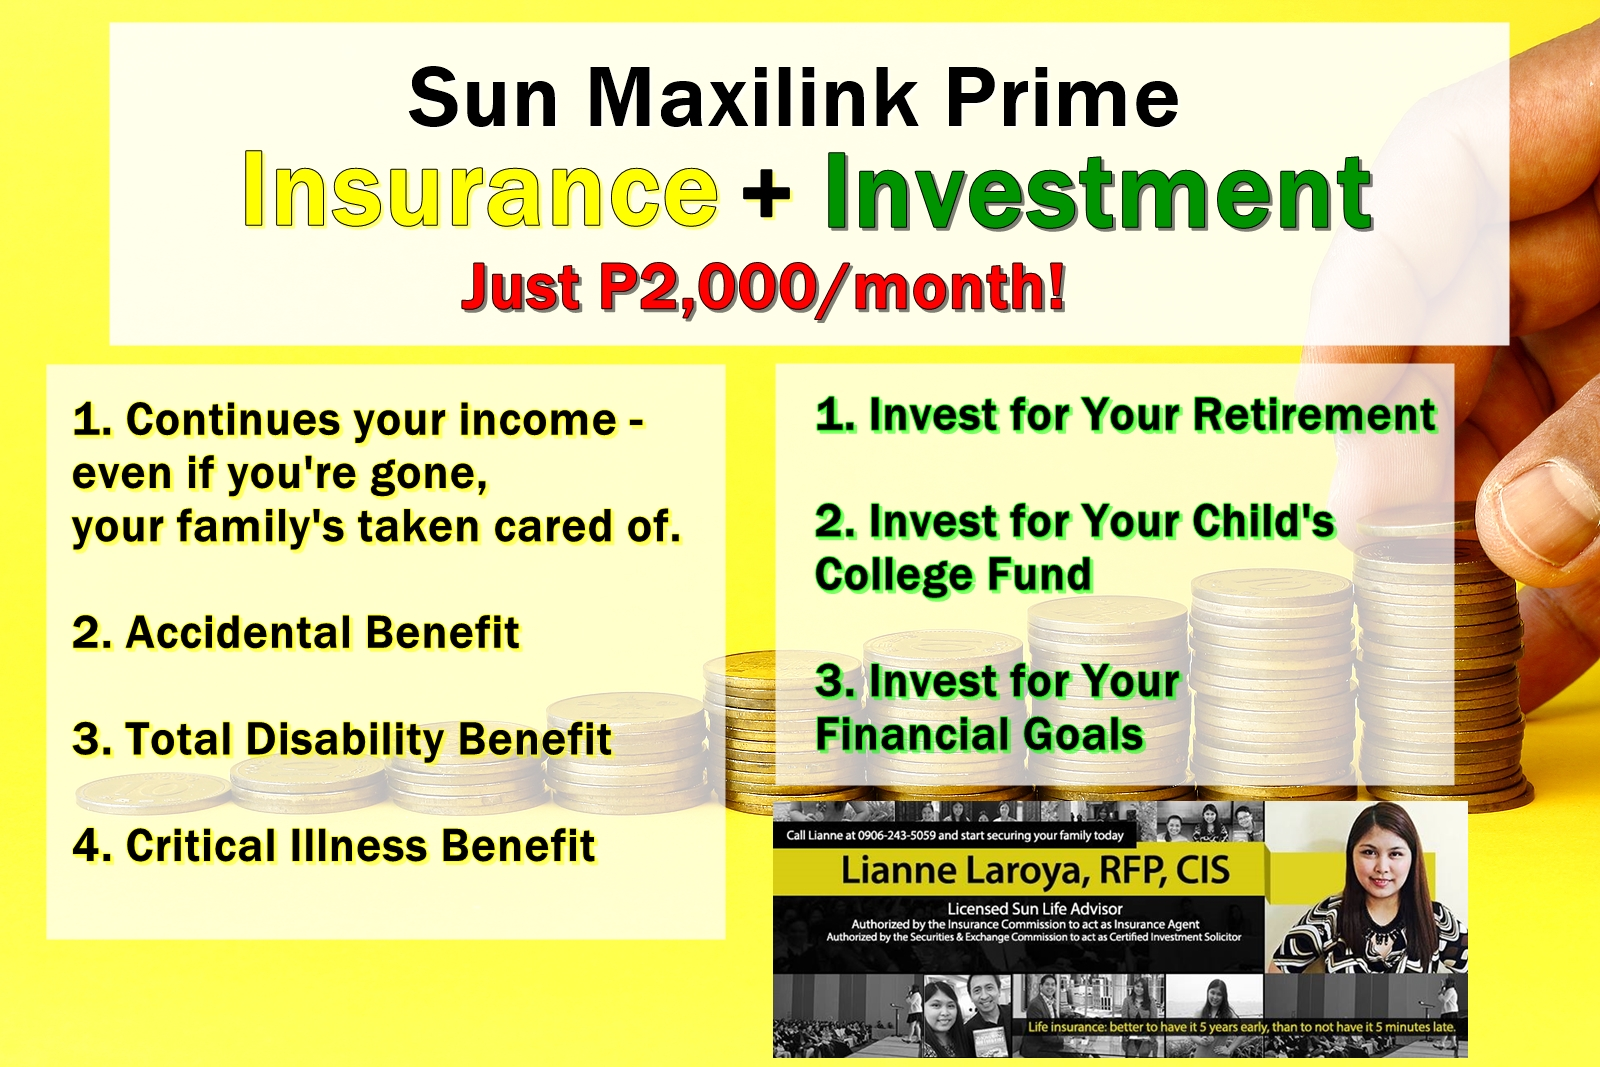 Sun Life Insurance Why Sun Maxilink Prime Is My Client S Top